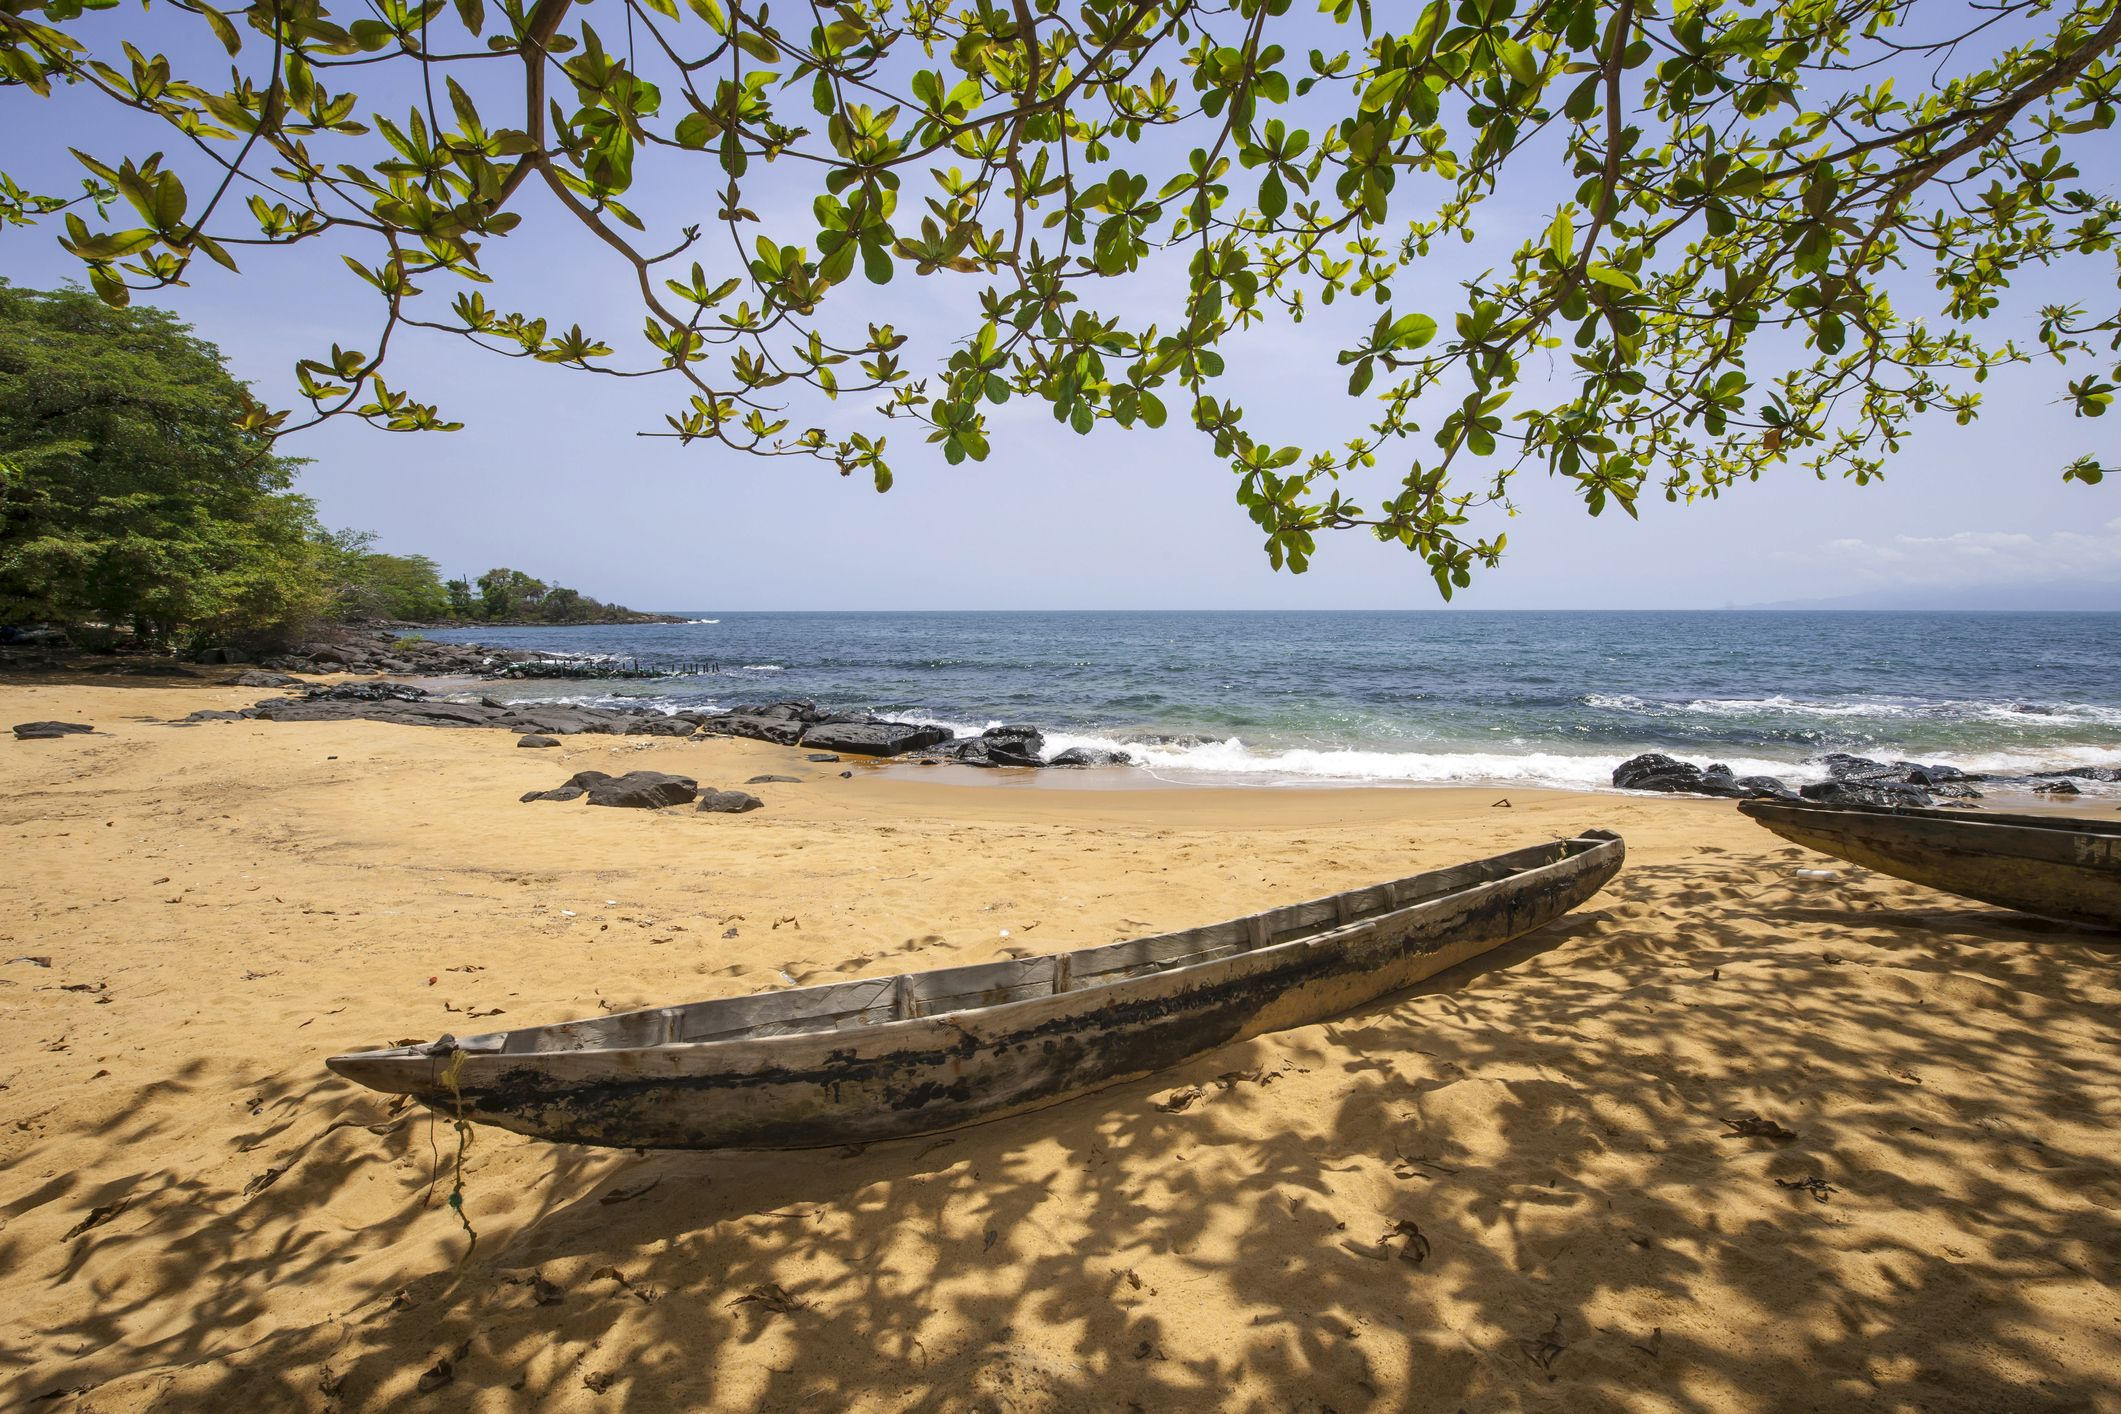 sierra leone travel destination